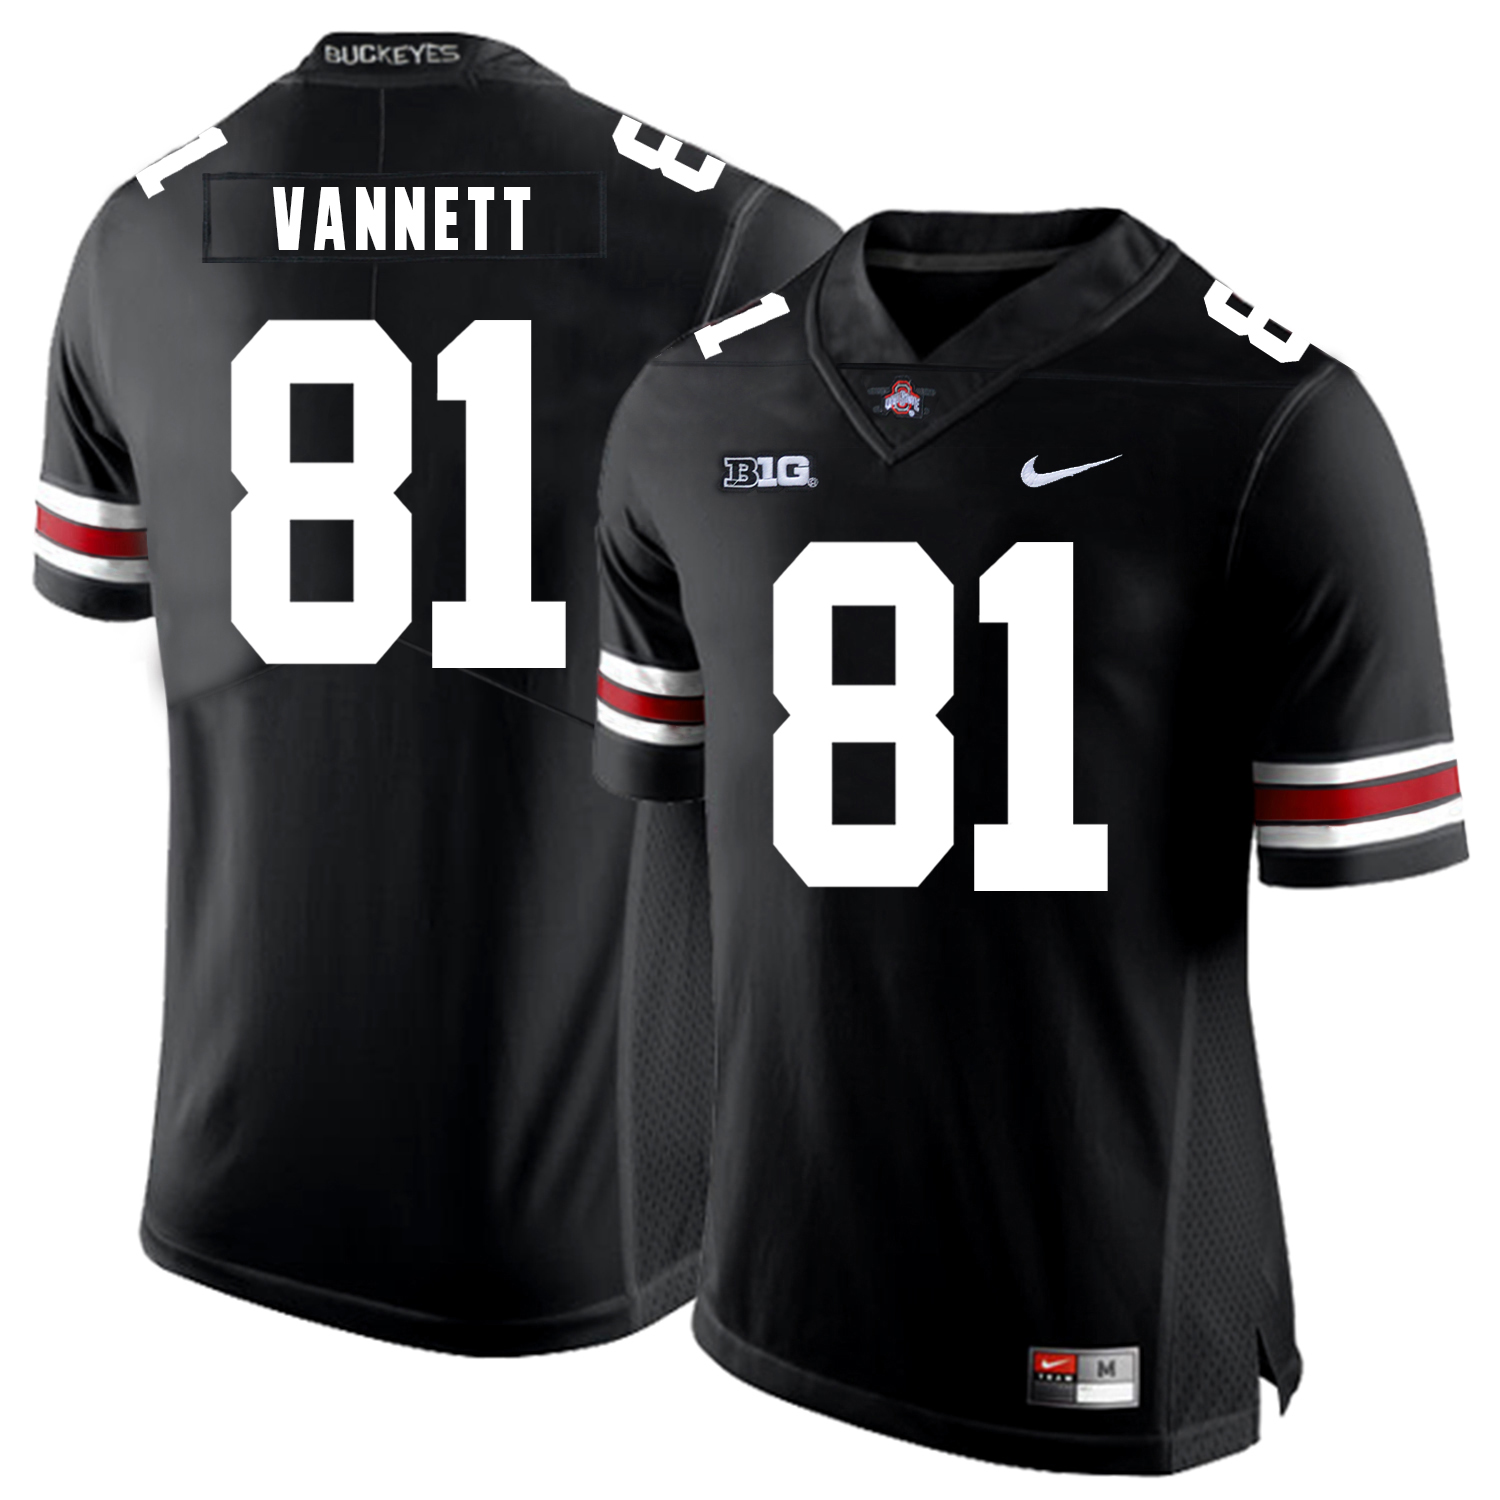 Ohio State Buckeyes 81 Nick Vannett Black Nike College Football Jersey